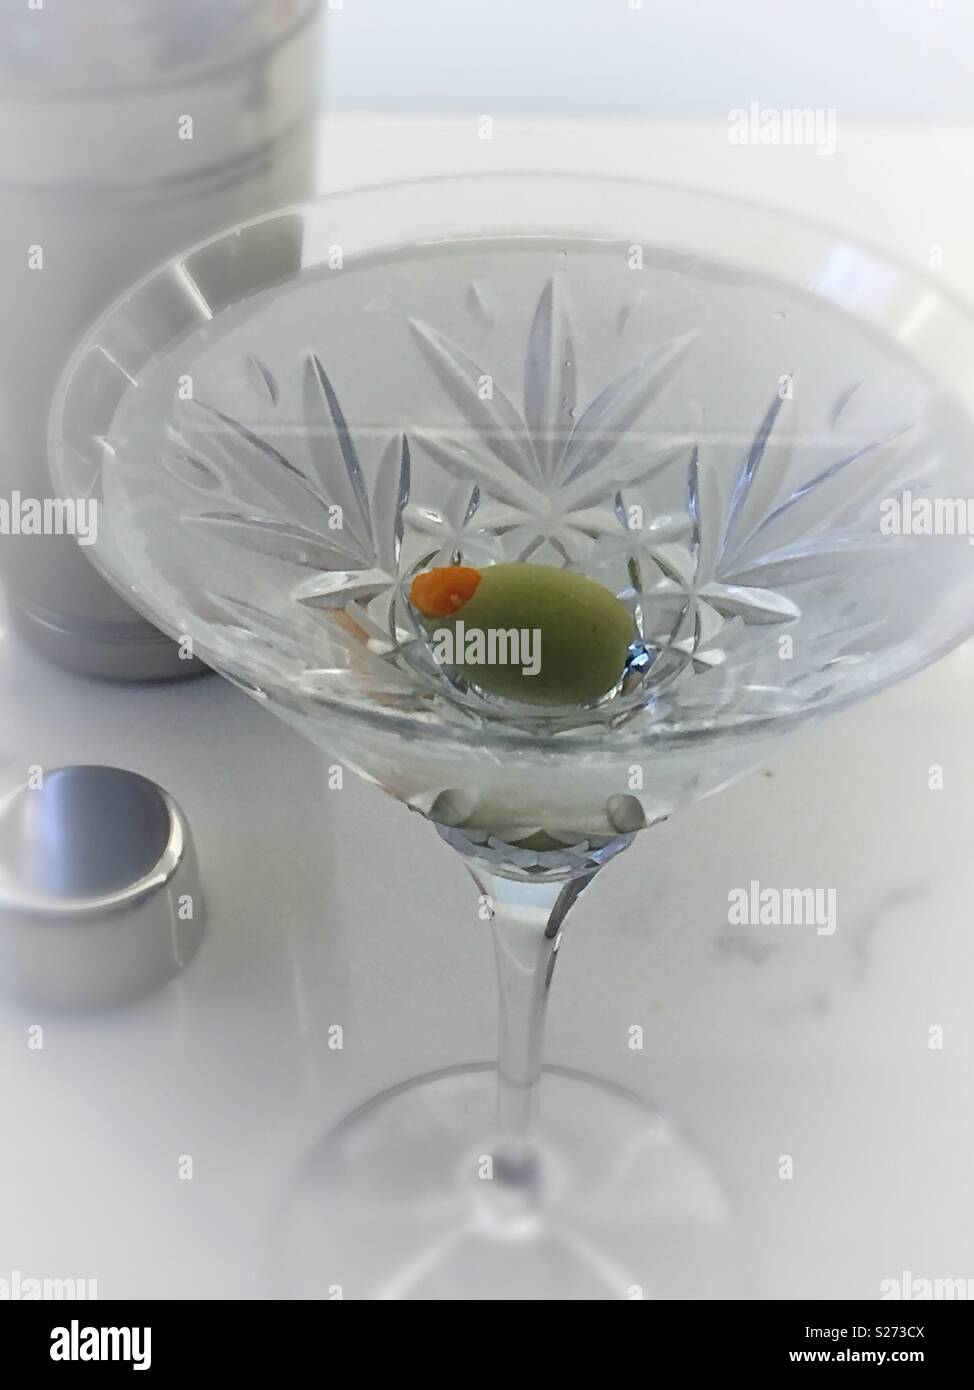 The classic dry gin martini next to a Cocktail shaker, served in a Waterford crystal martini glass, USA - Stock Image